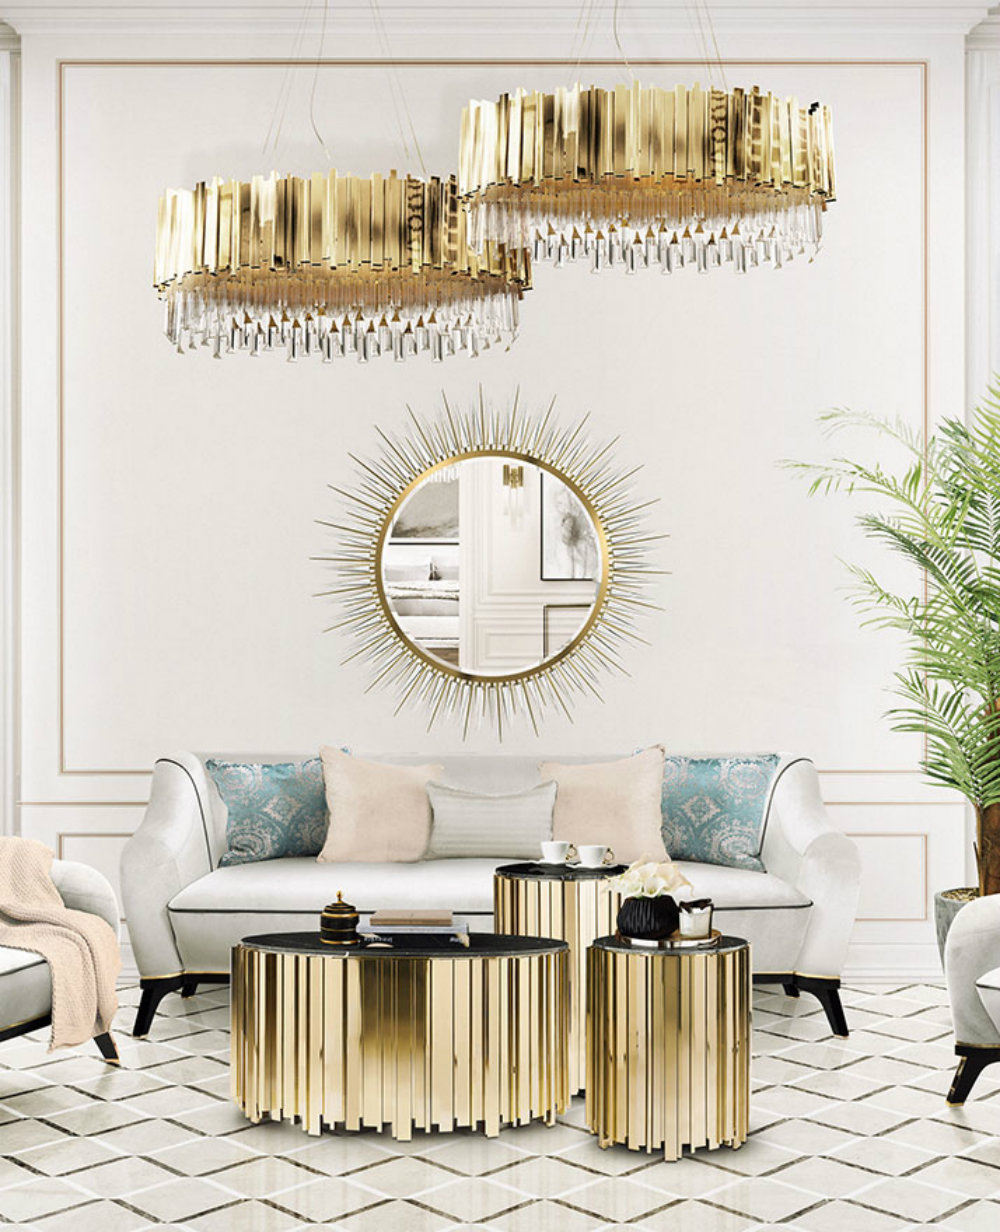 Create An Ideal Lighting Arrangement With Tom Dixon's Tips